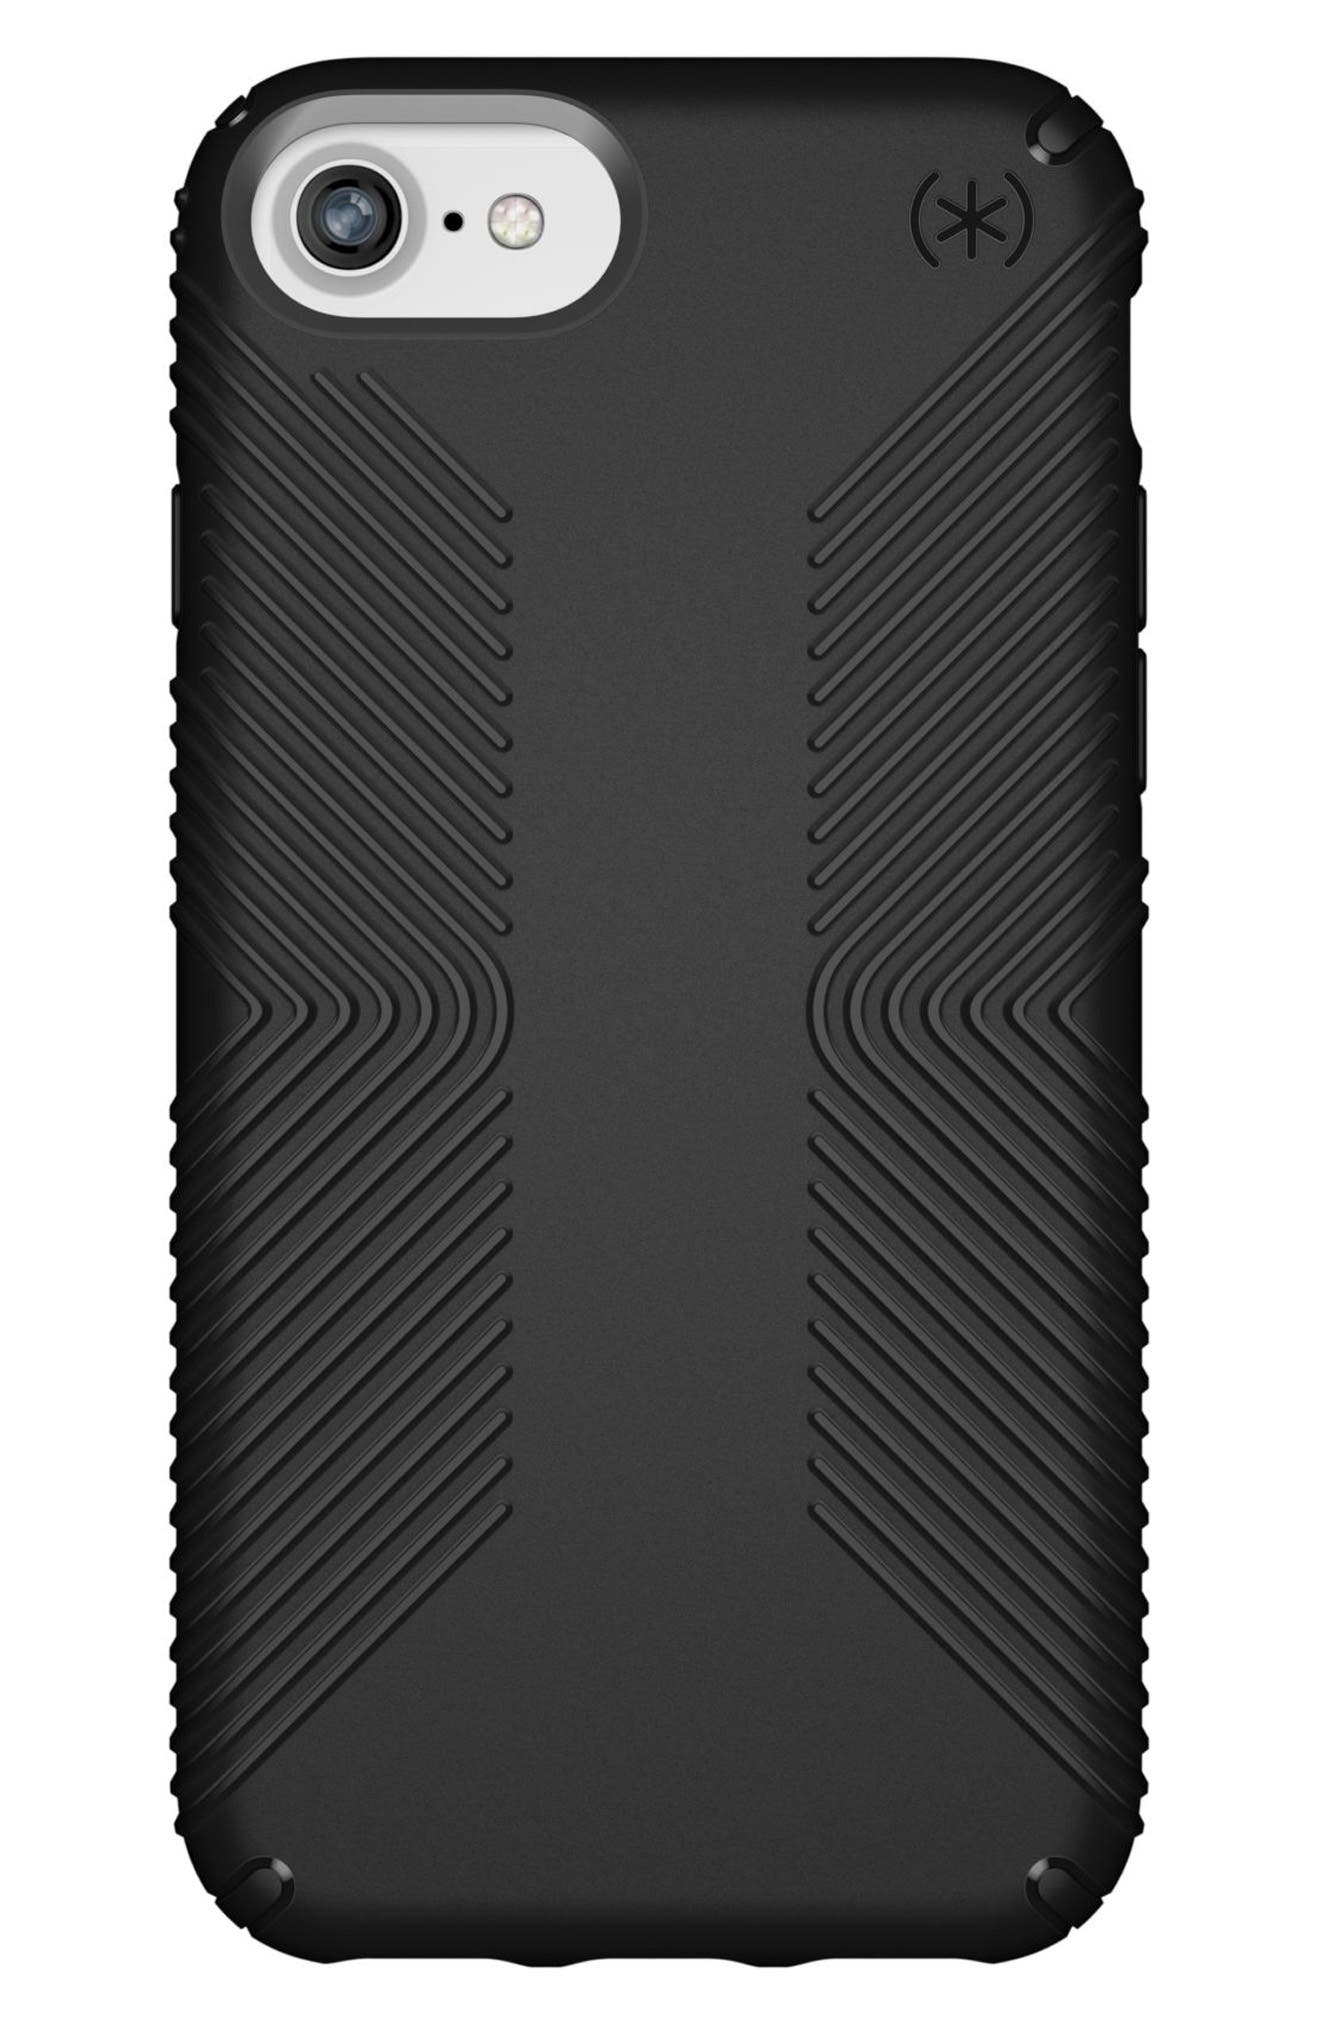 Speck Grip iPhone 6/6s/7/8 Case